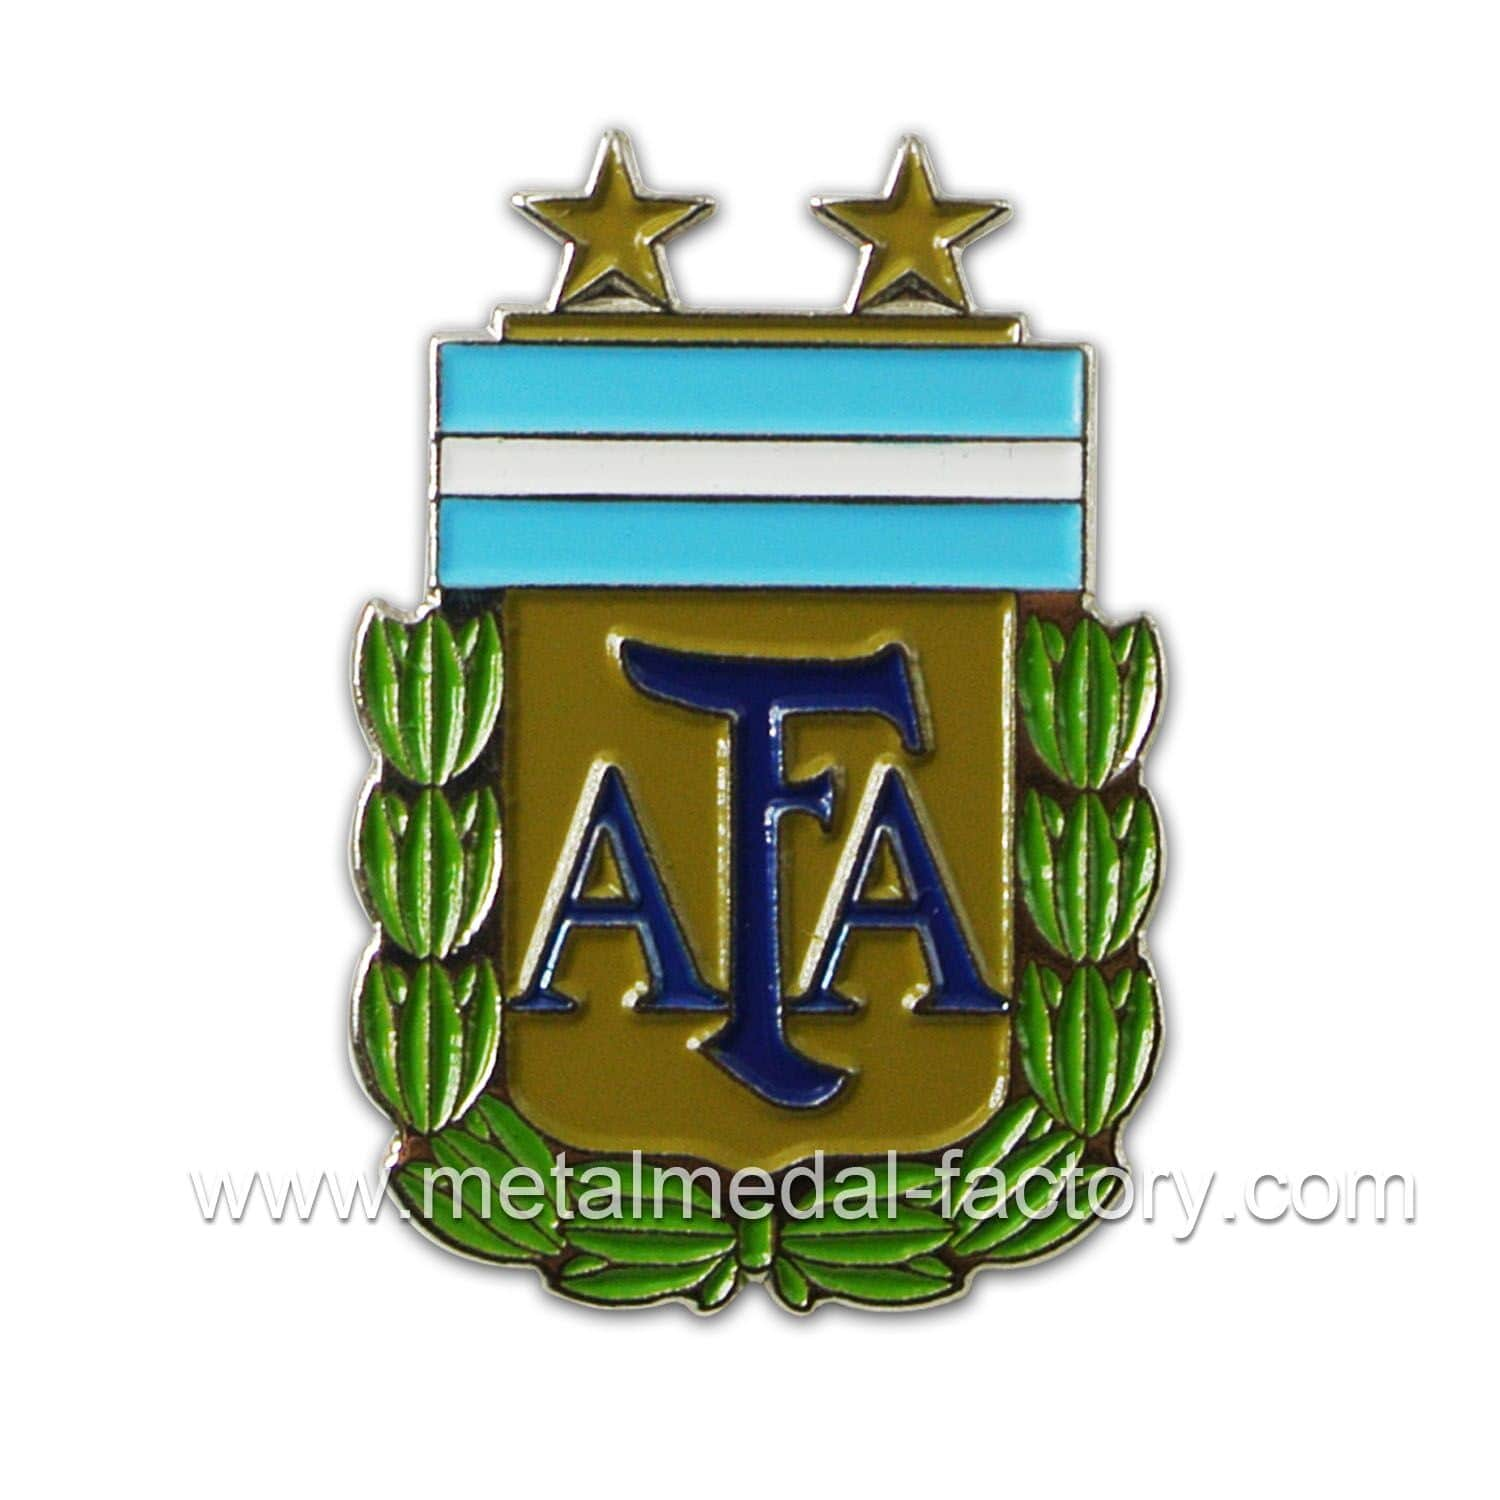 Argentine Football Association is our cooperation